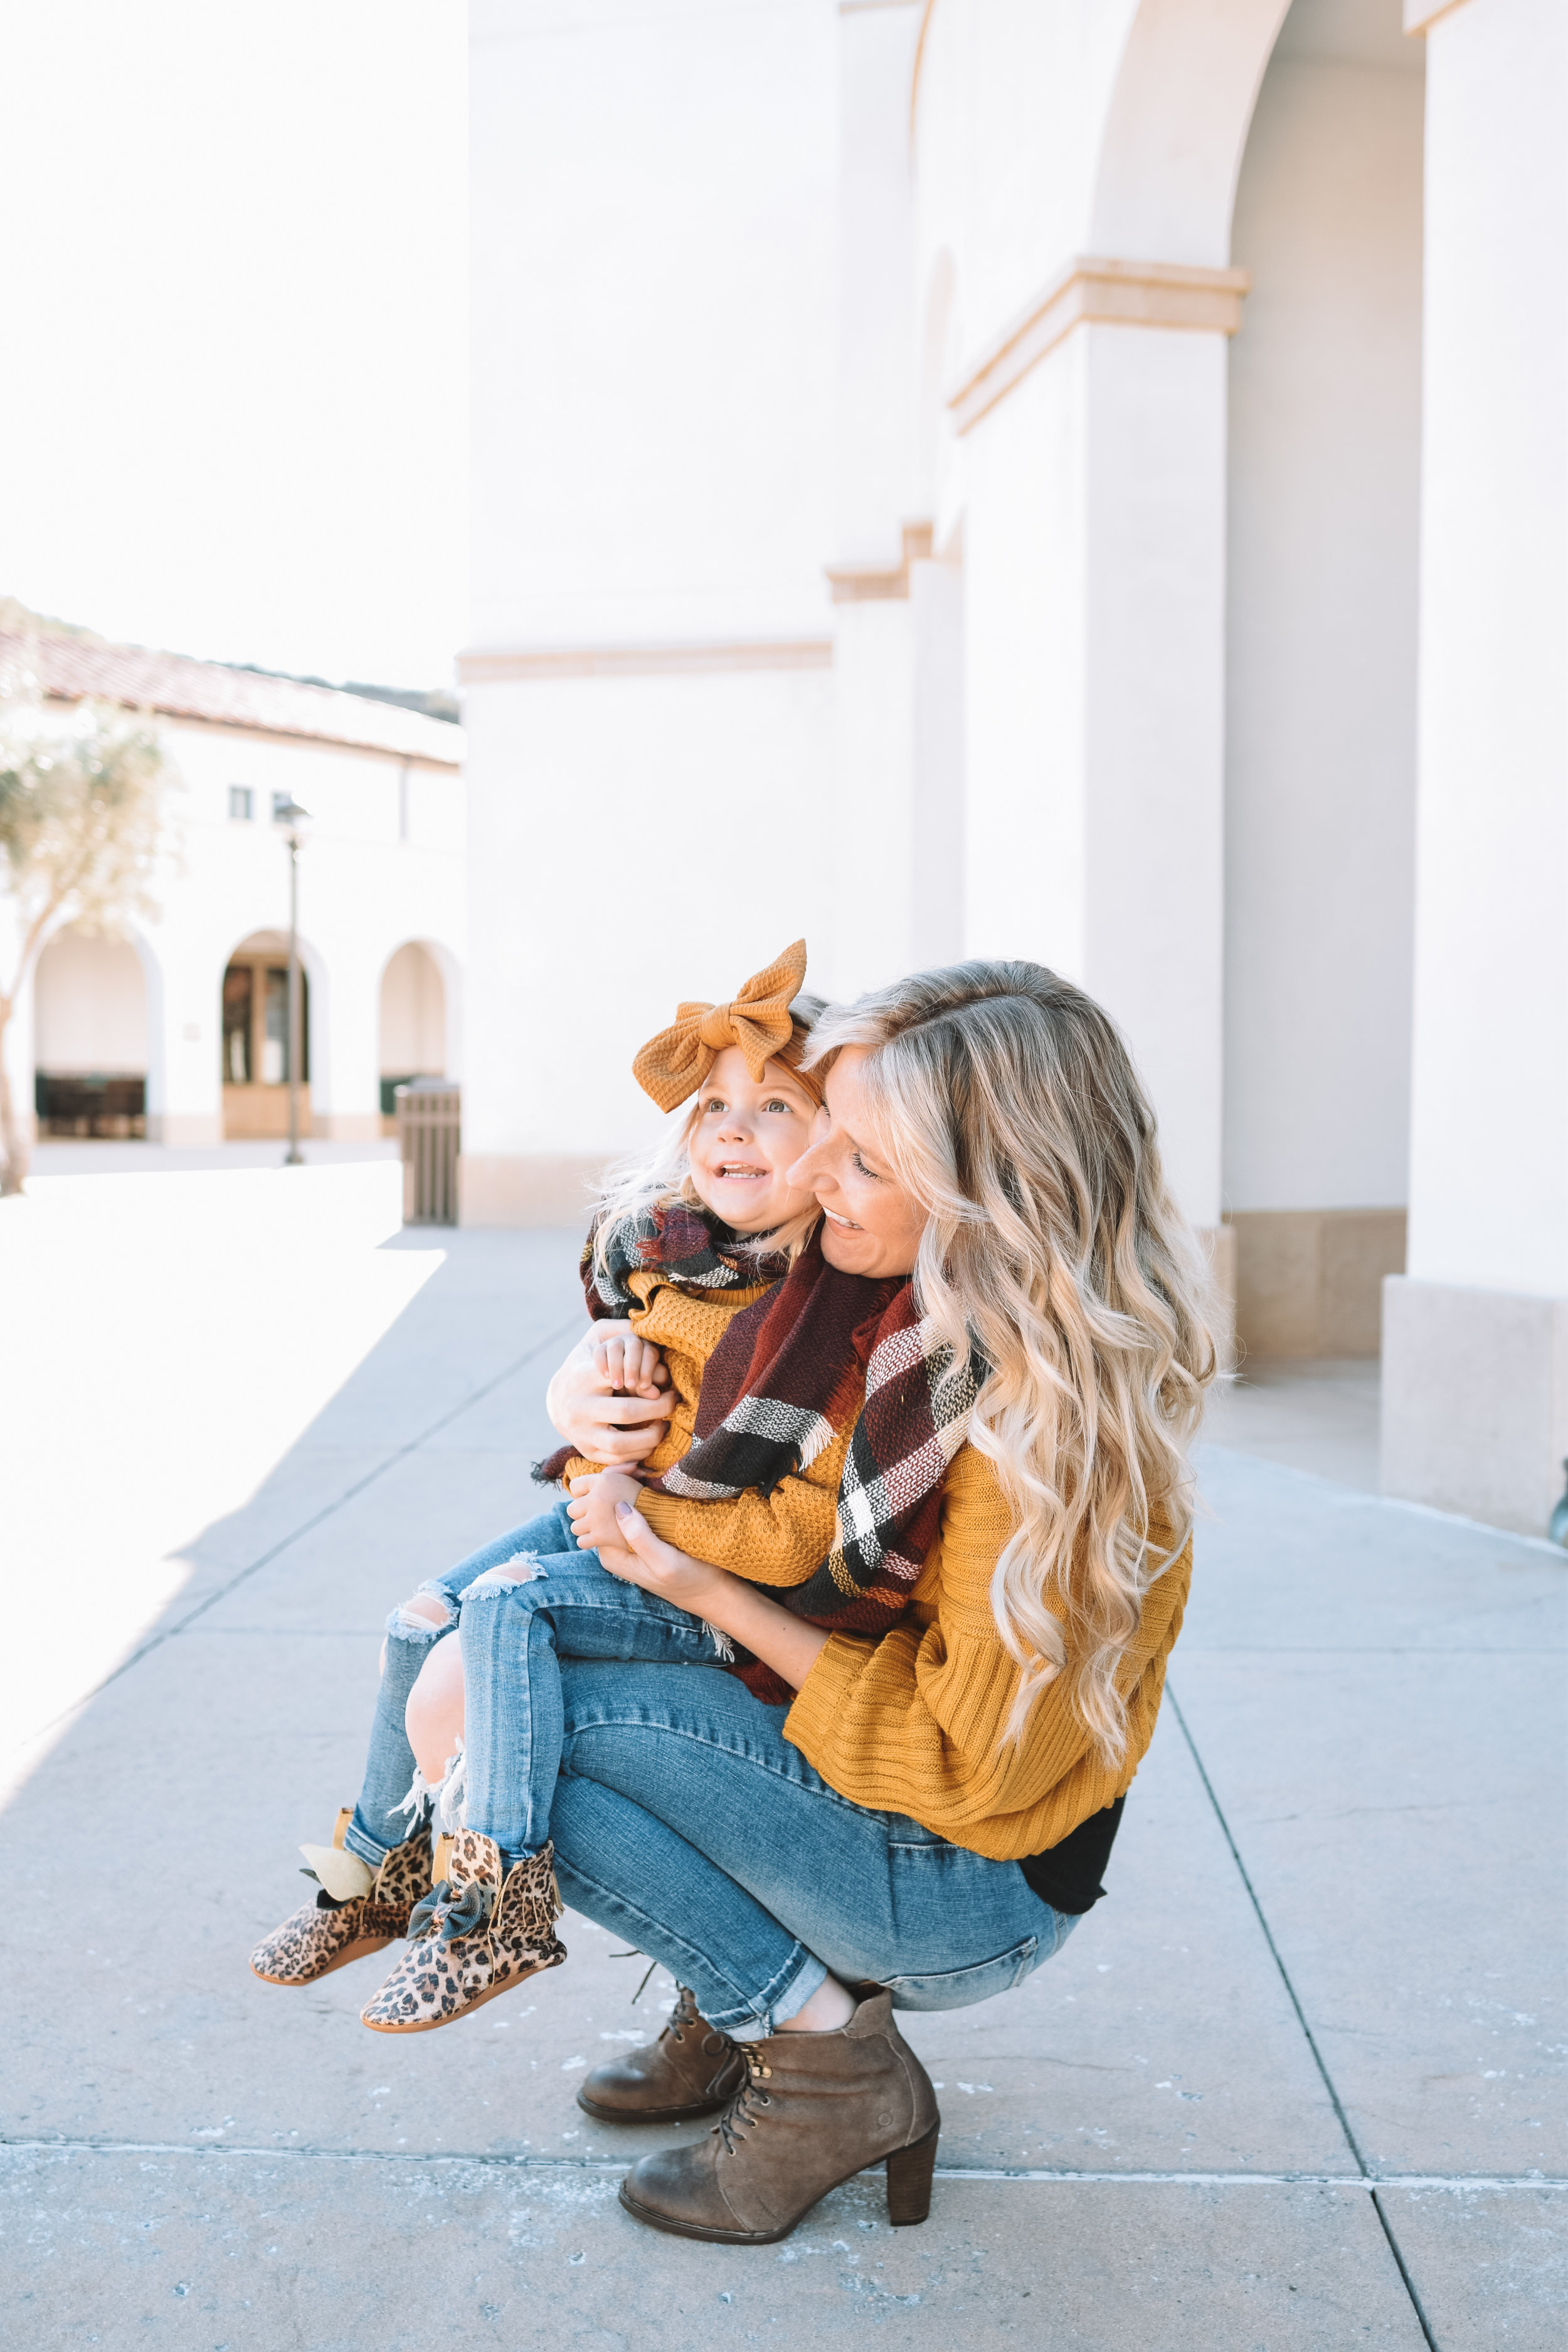 Best Kind of Tape In Hair Extensions - Westlake Village Hair Extensions Canyon Salon Brittney Hodgins - The Overwhelmed Mommy Blogger